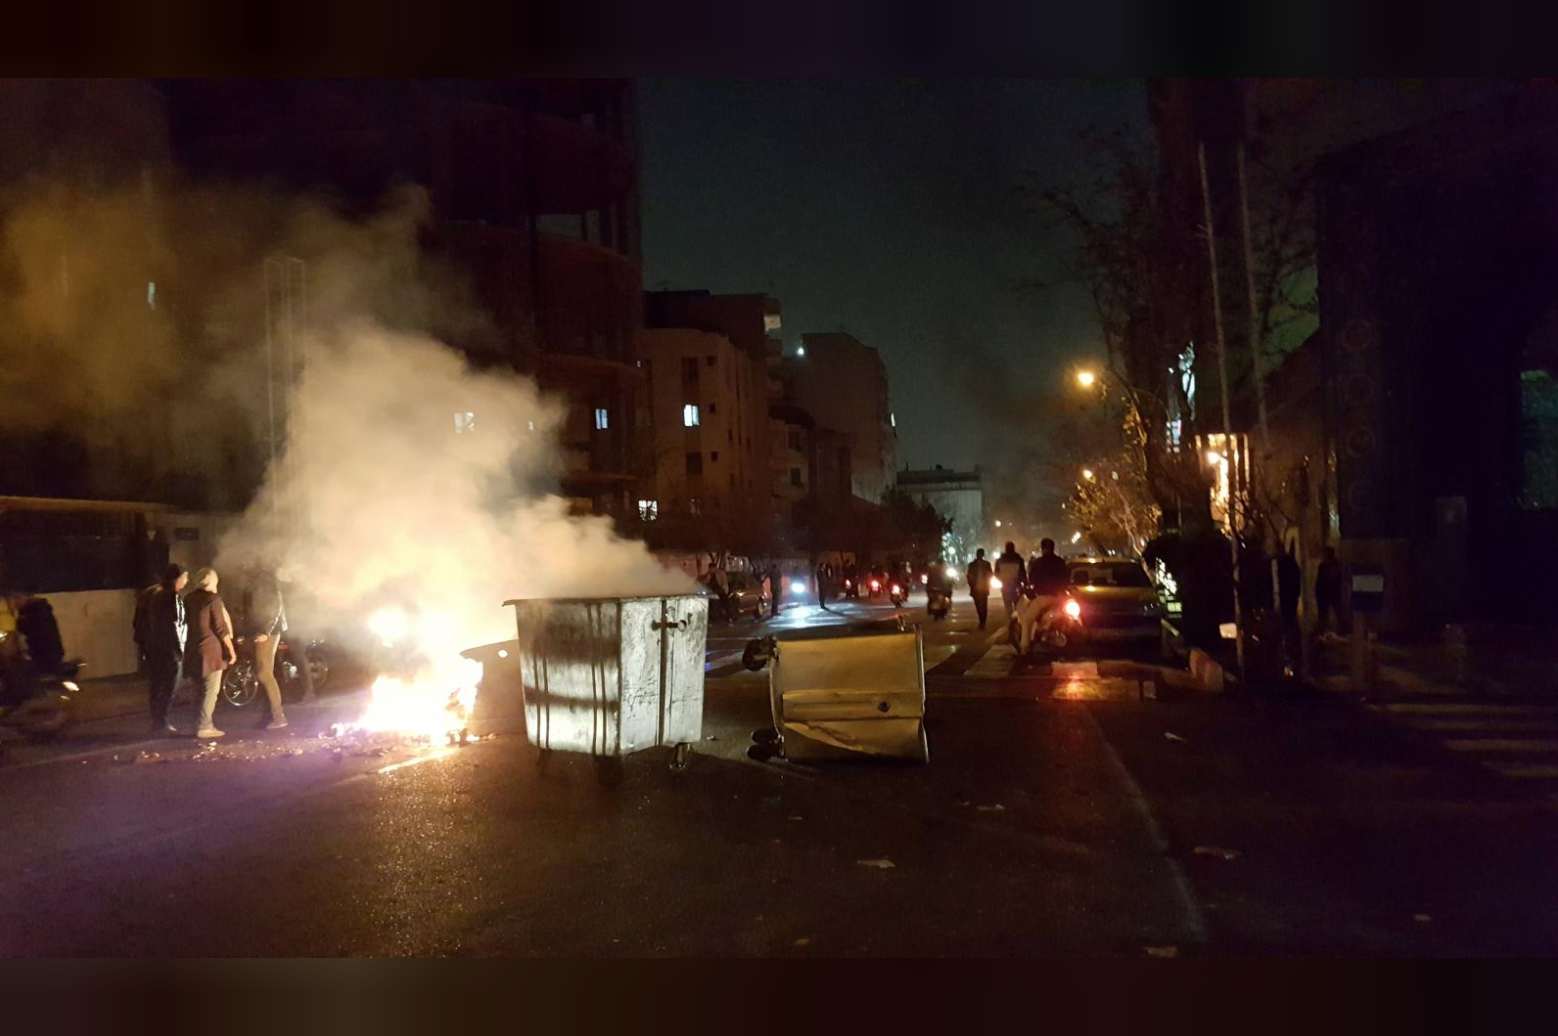 Iran stages pro-government rallies after days of unrest